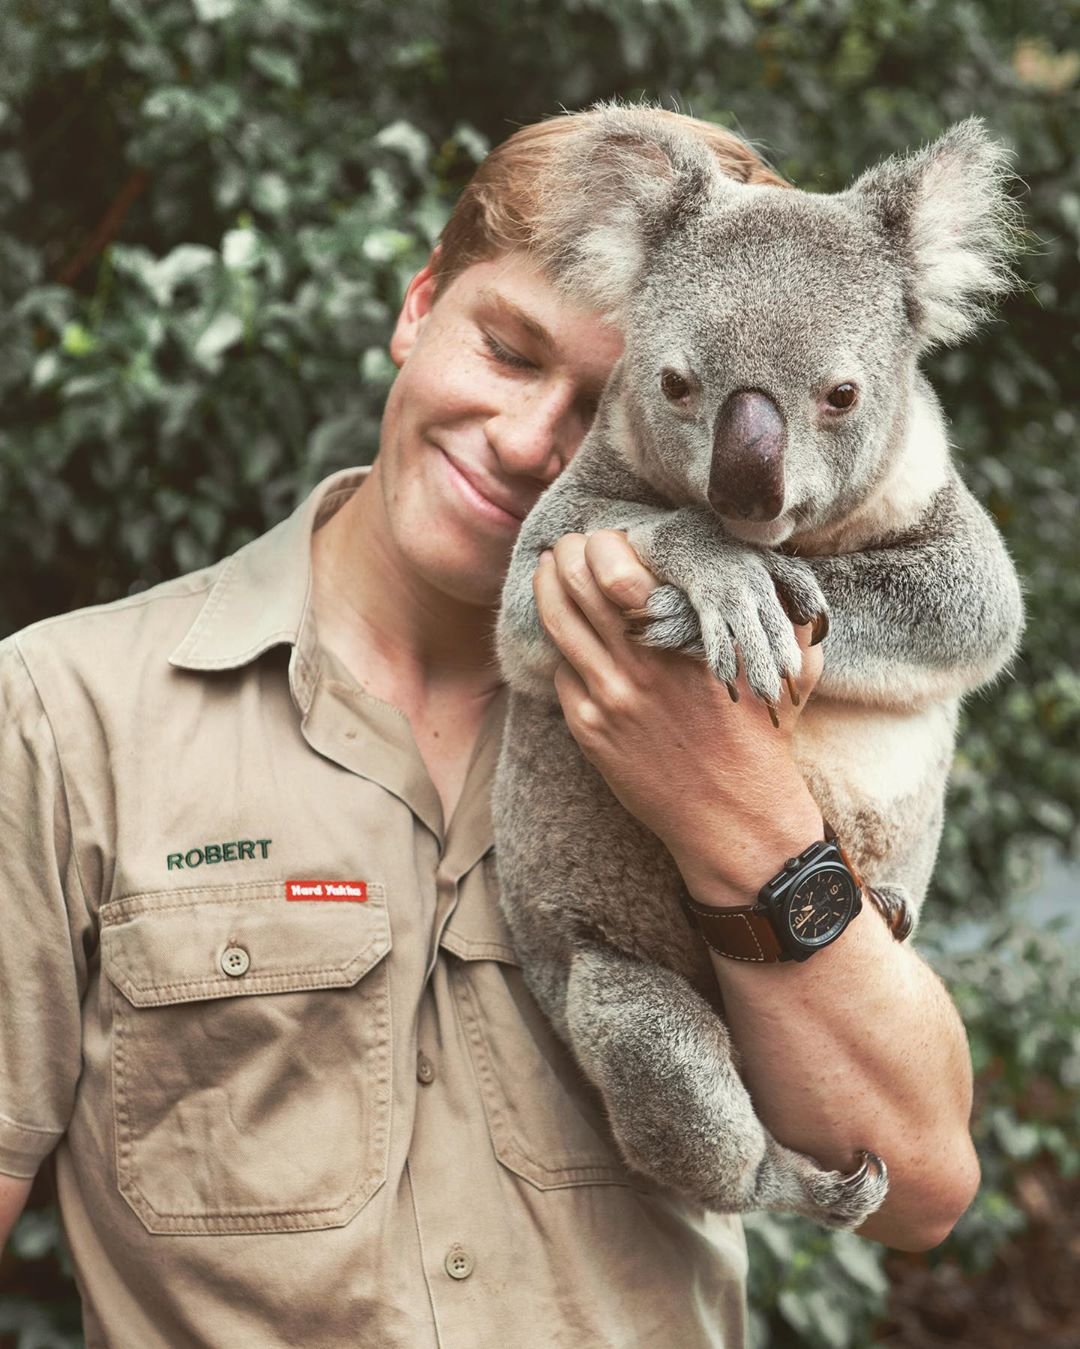 Steve Irwin S Son Recreates Photos His Father Took And People Are Astounded By The Resemblance